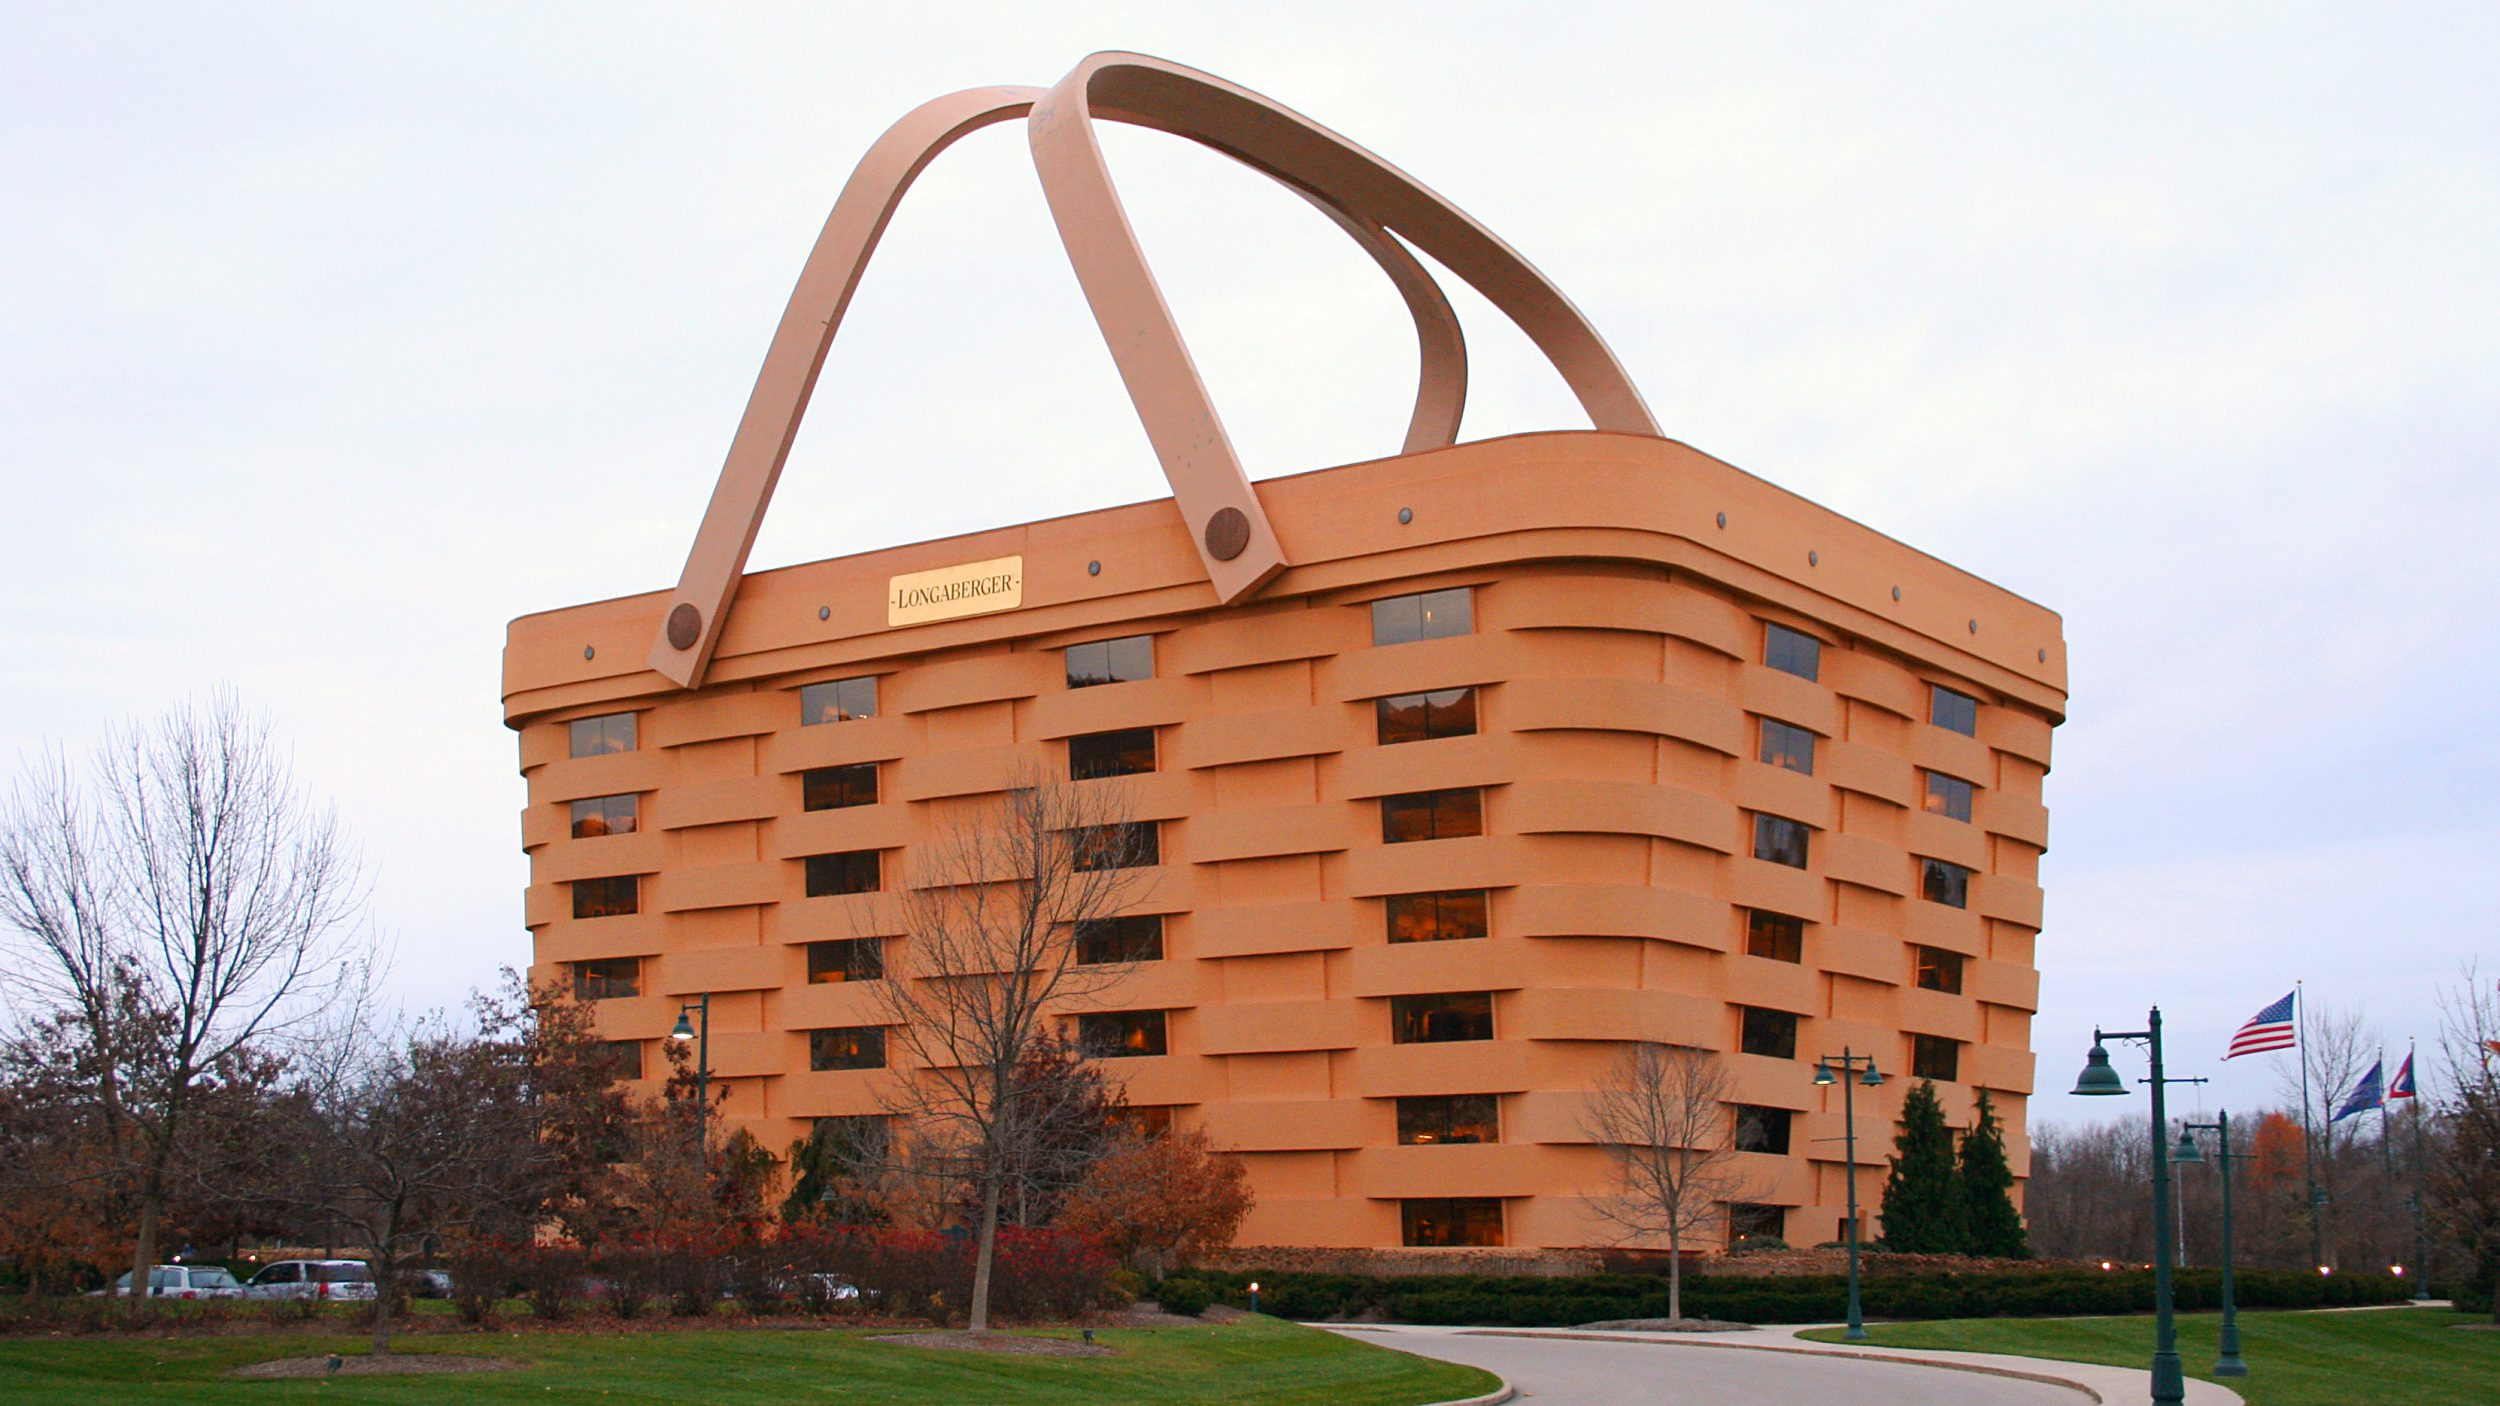 Delightful Basket Shaped Building In Ohio Is Sold. U2014 Quartzy